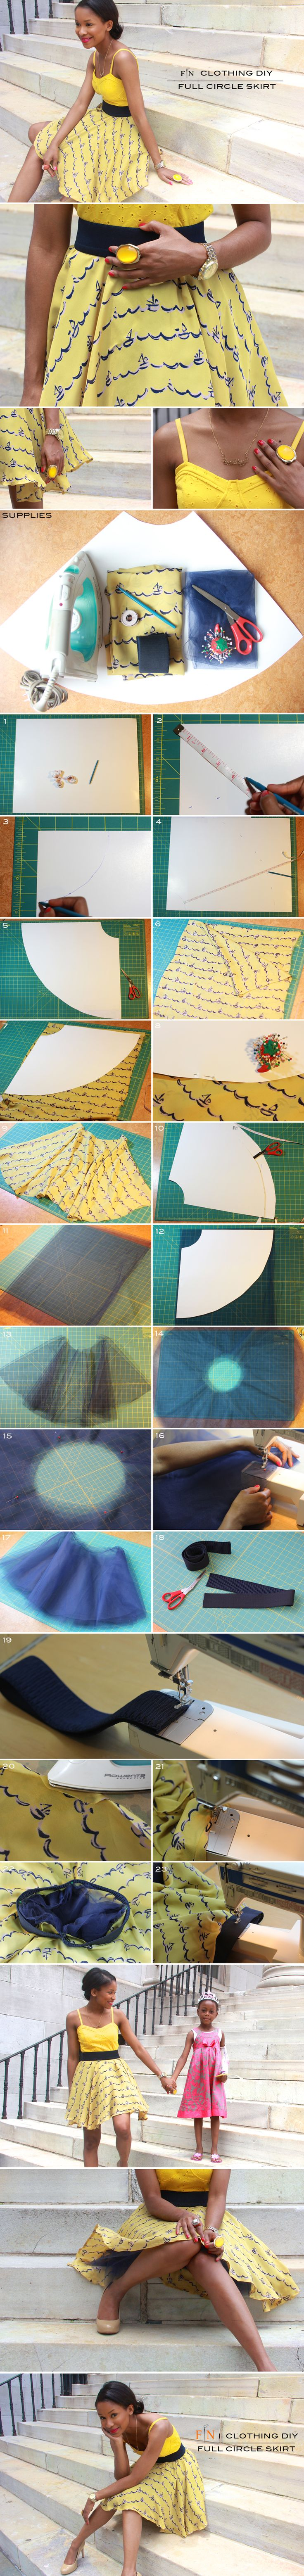 FRUGAL-NOMICS.COM DIY: Full Circle Skirt #tulle #diy #sailboat